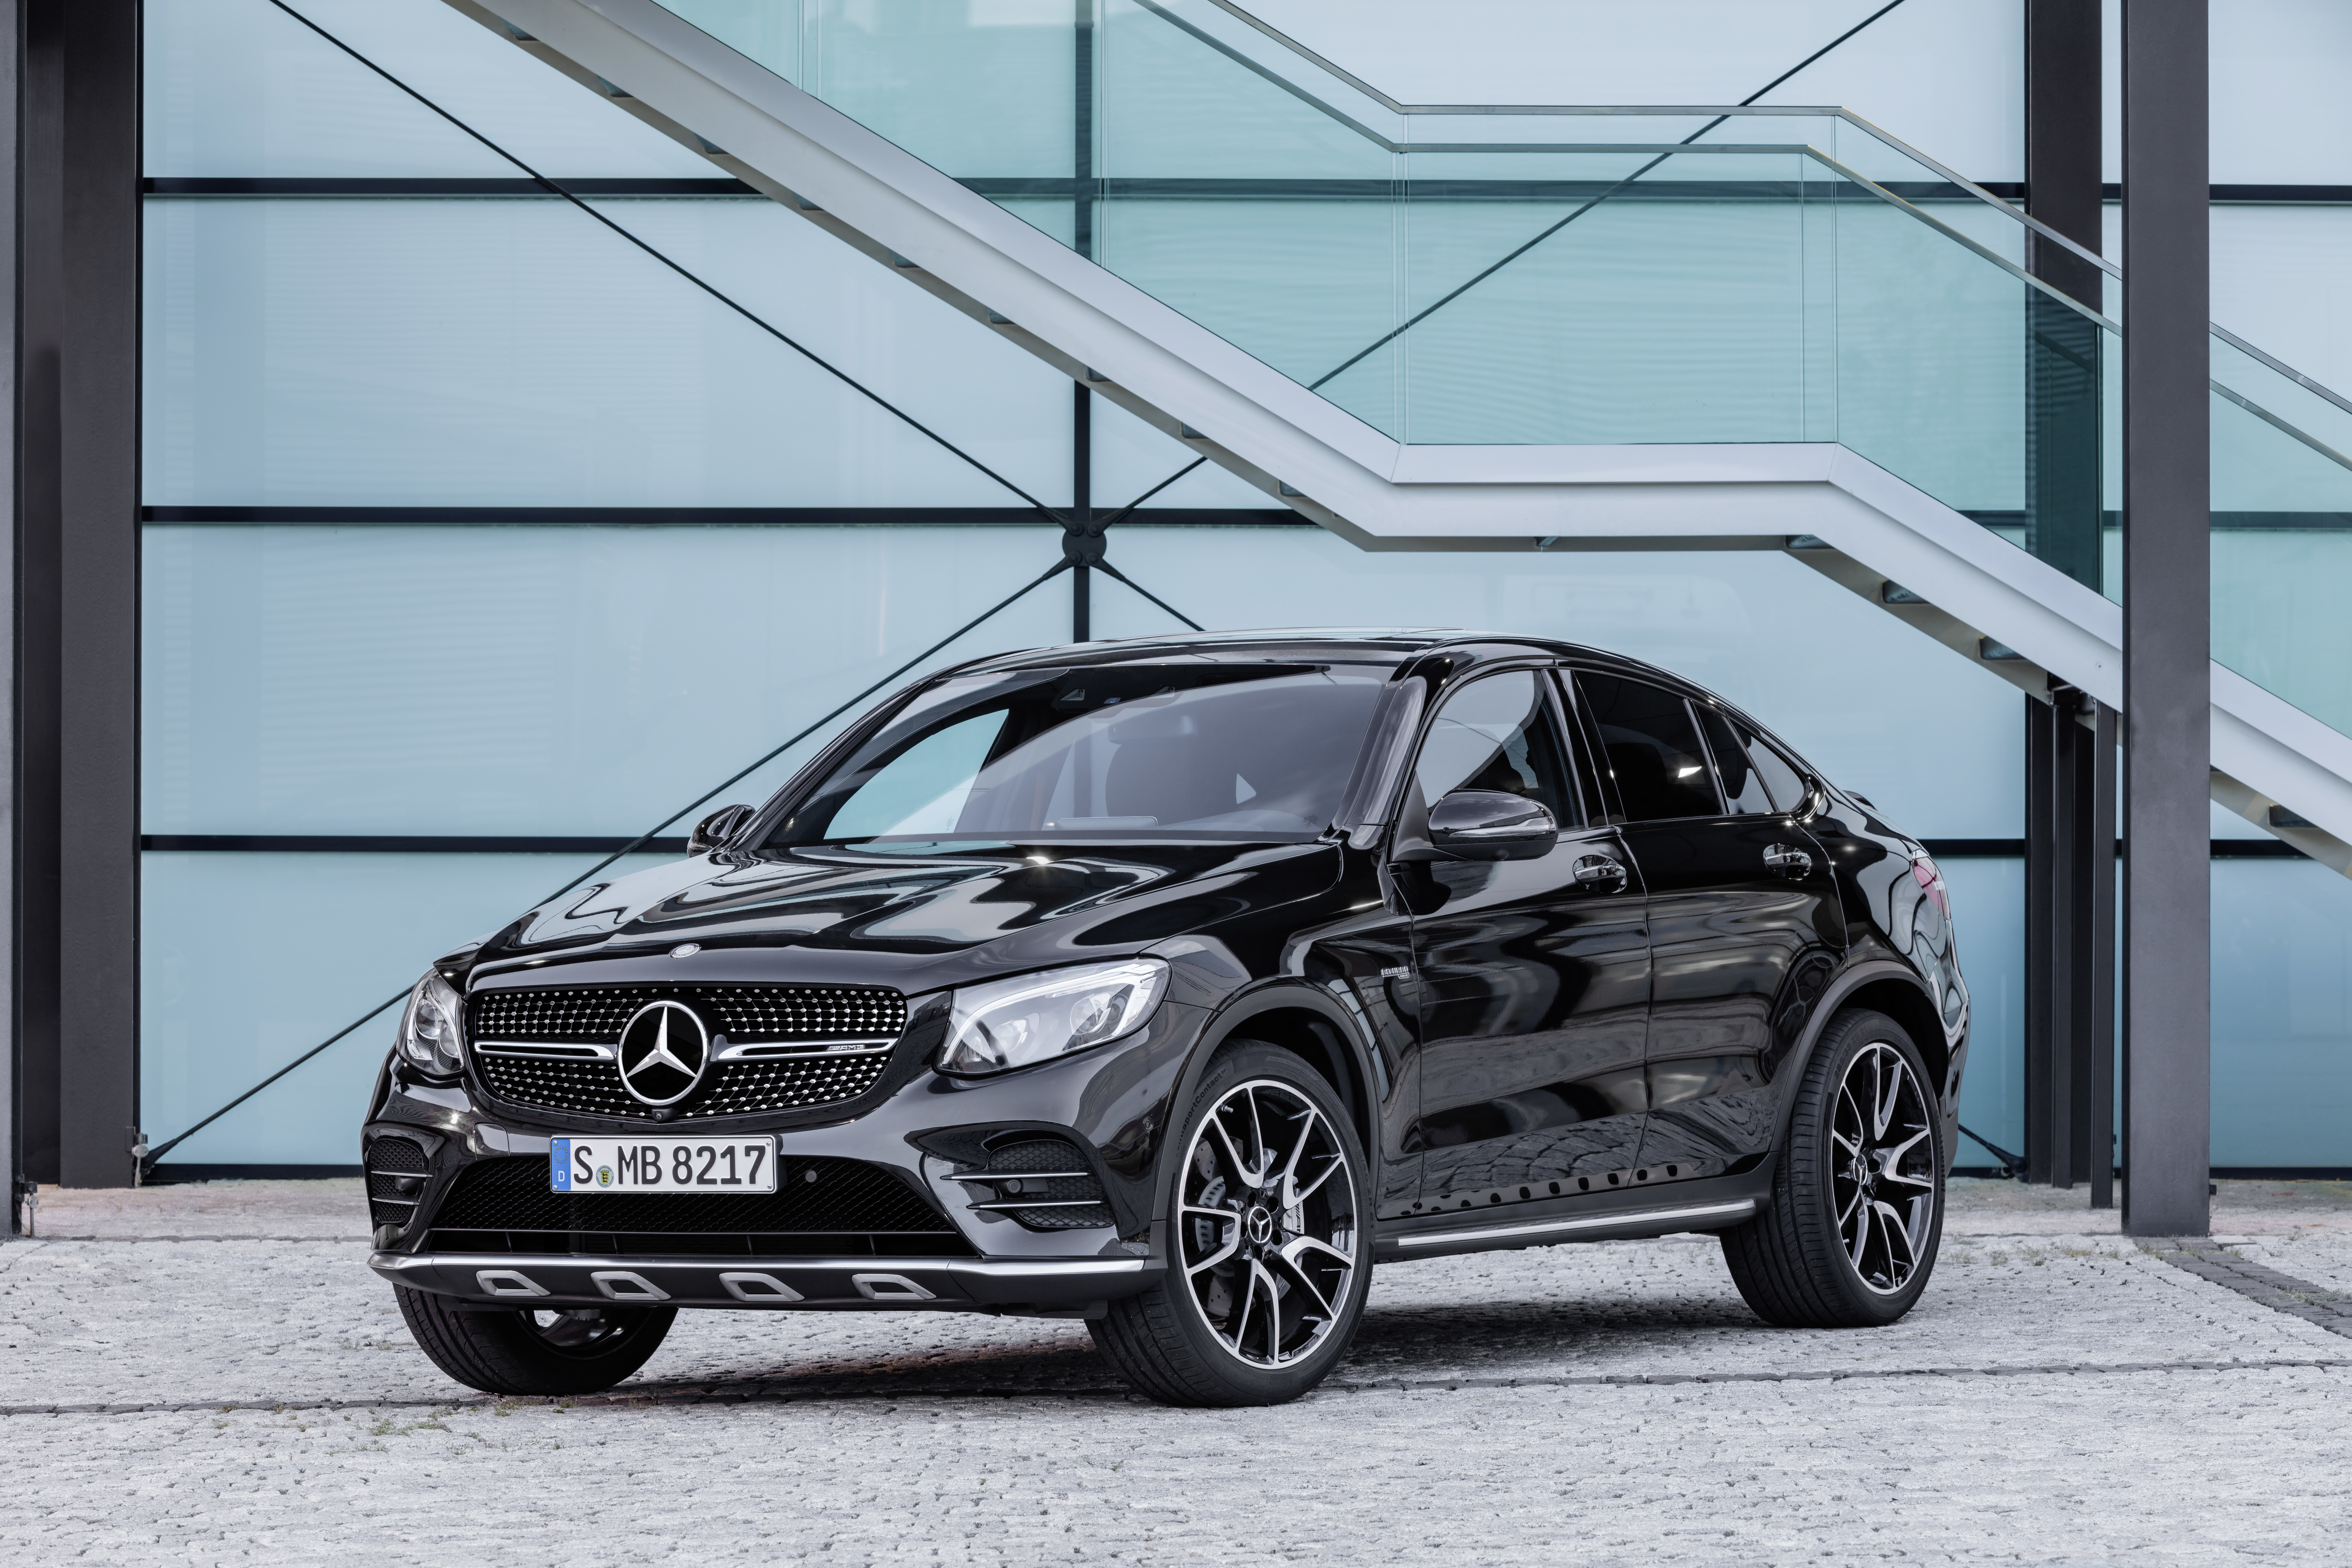 Mercedes-AMG GLC 43 Coupé